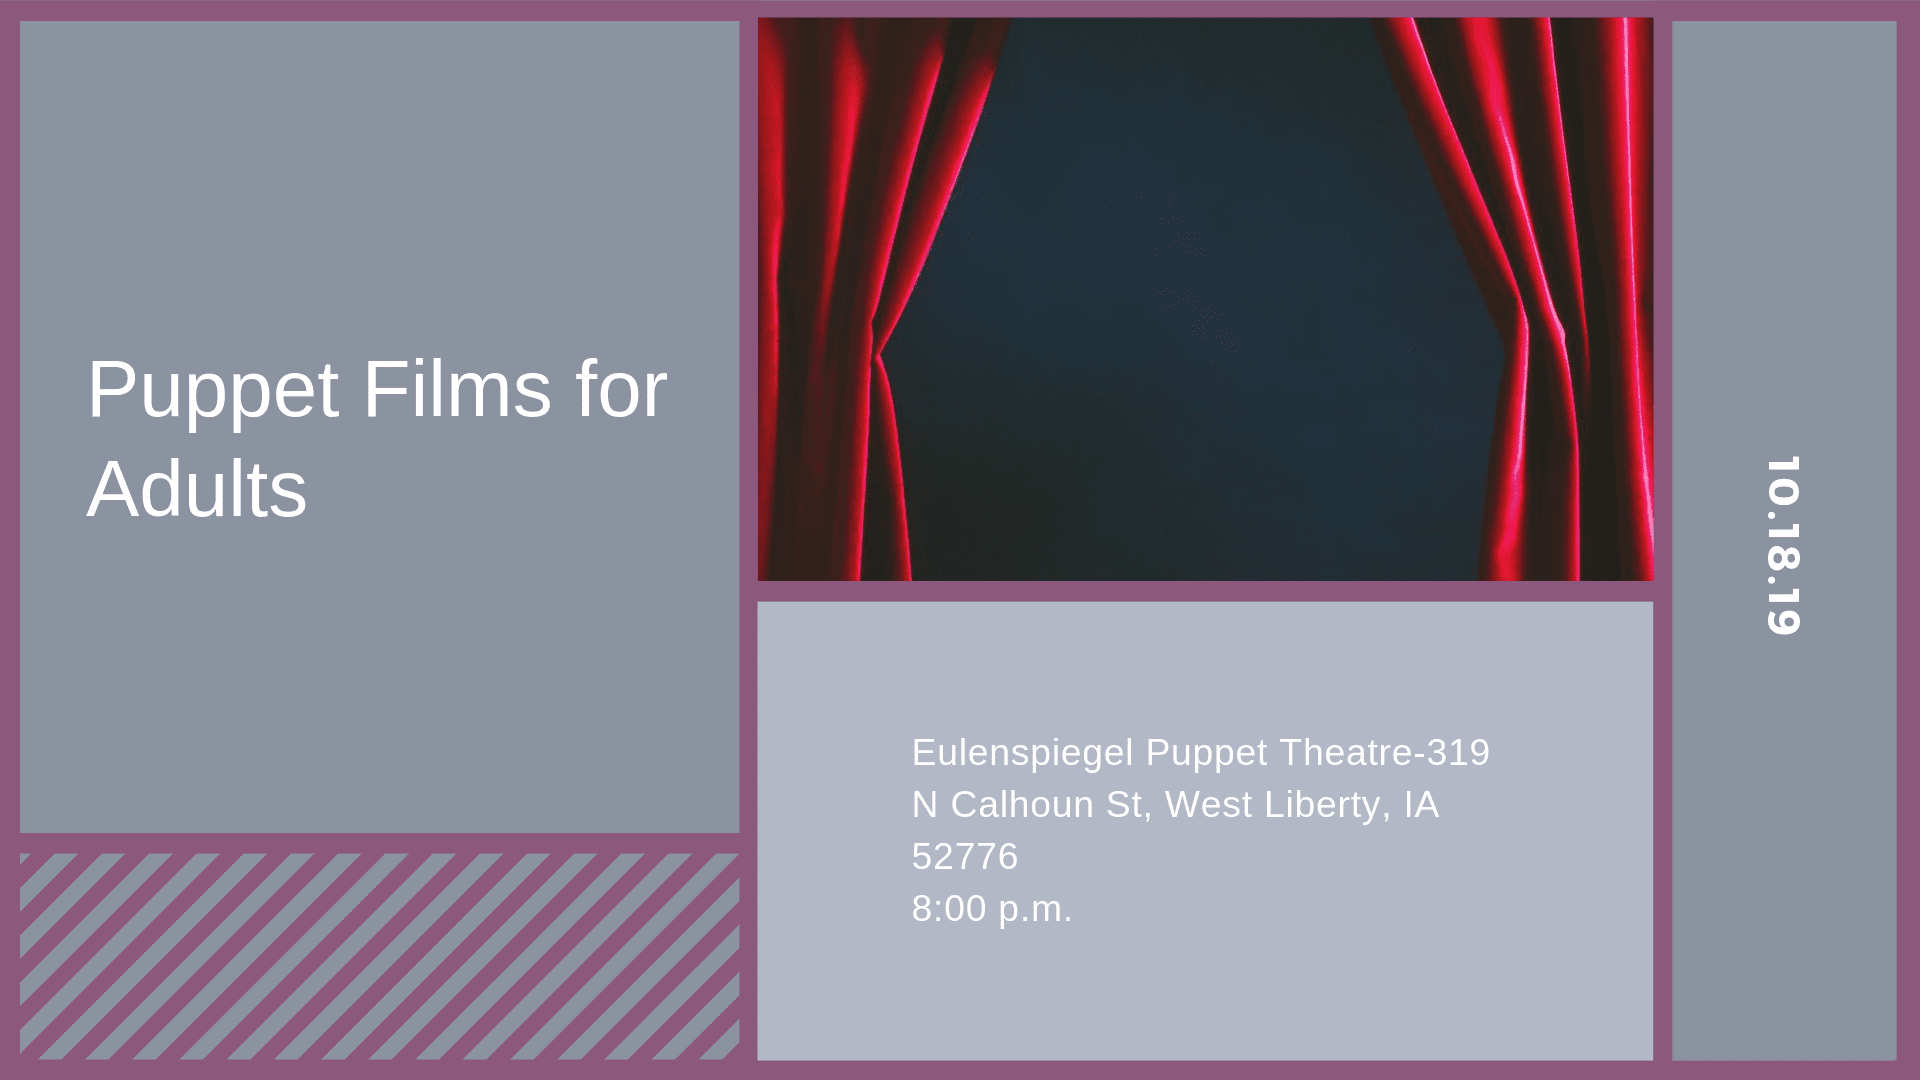 Puppet Films for Adults